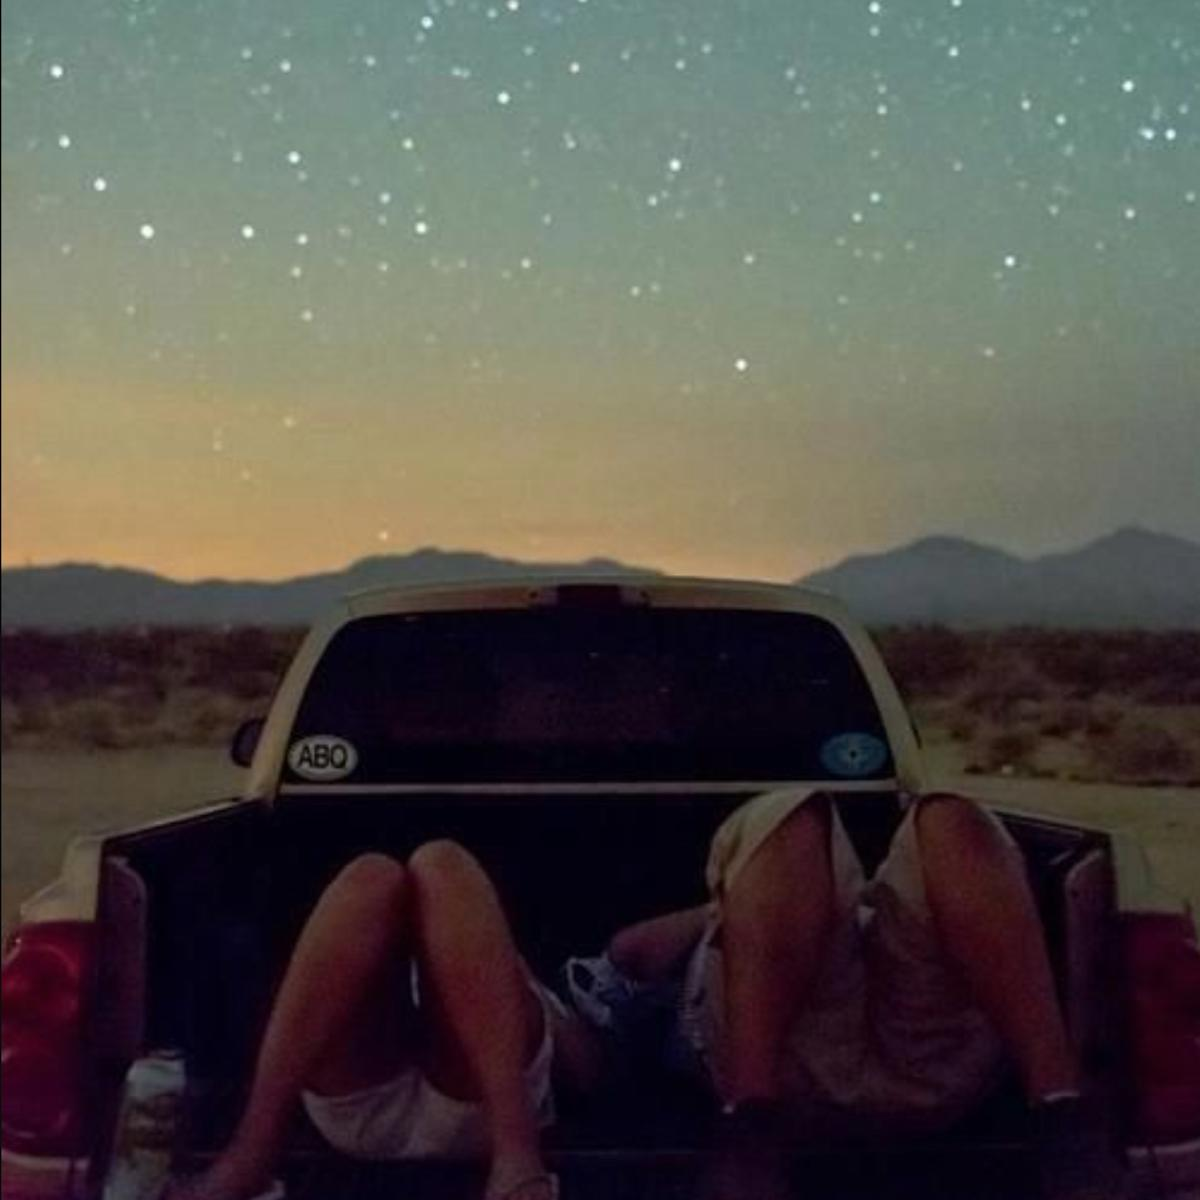 Stargazing car stock image